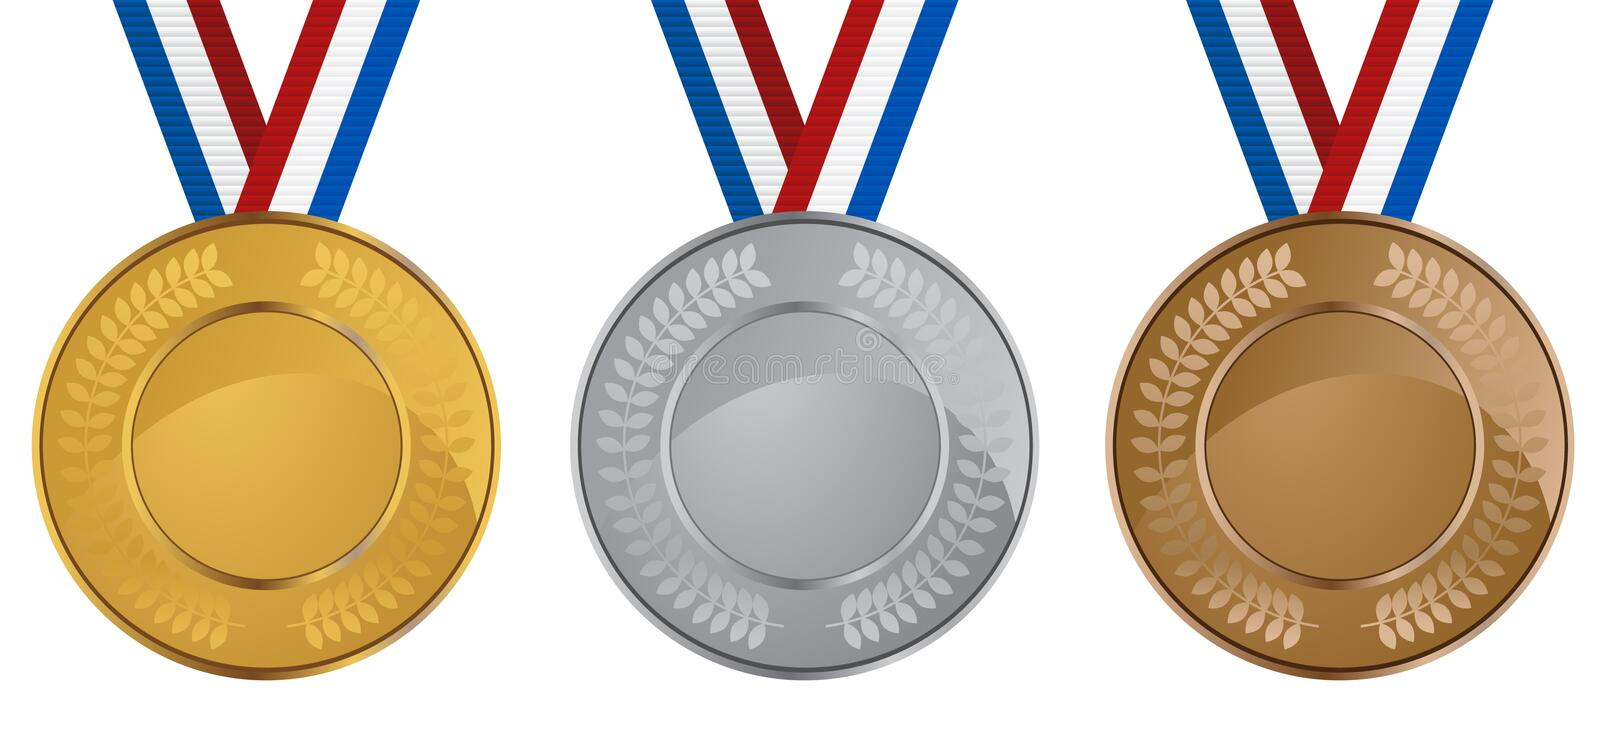 Medallas olímpicas libre illustration